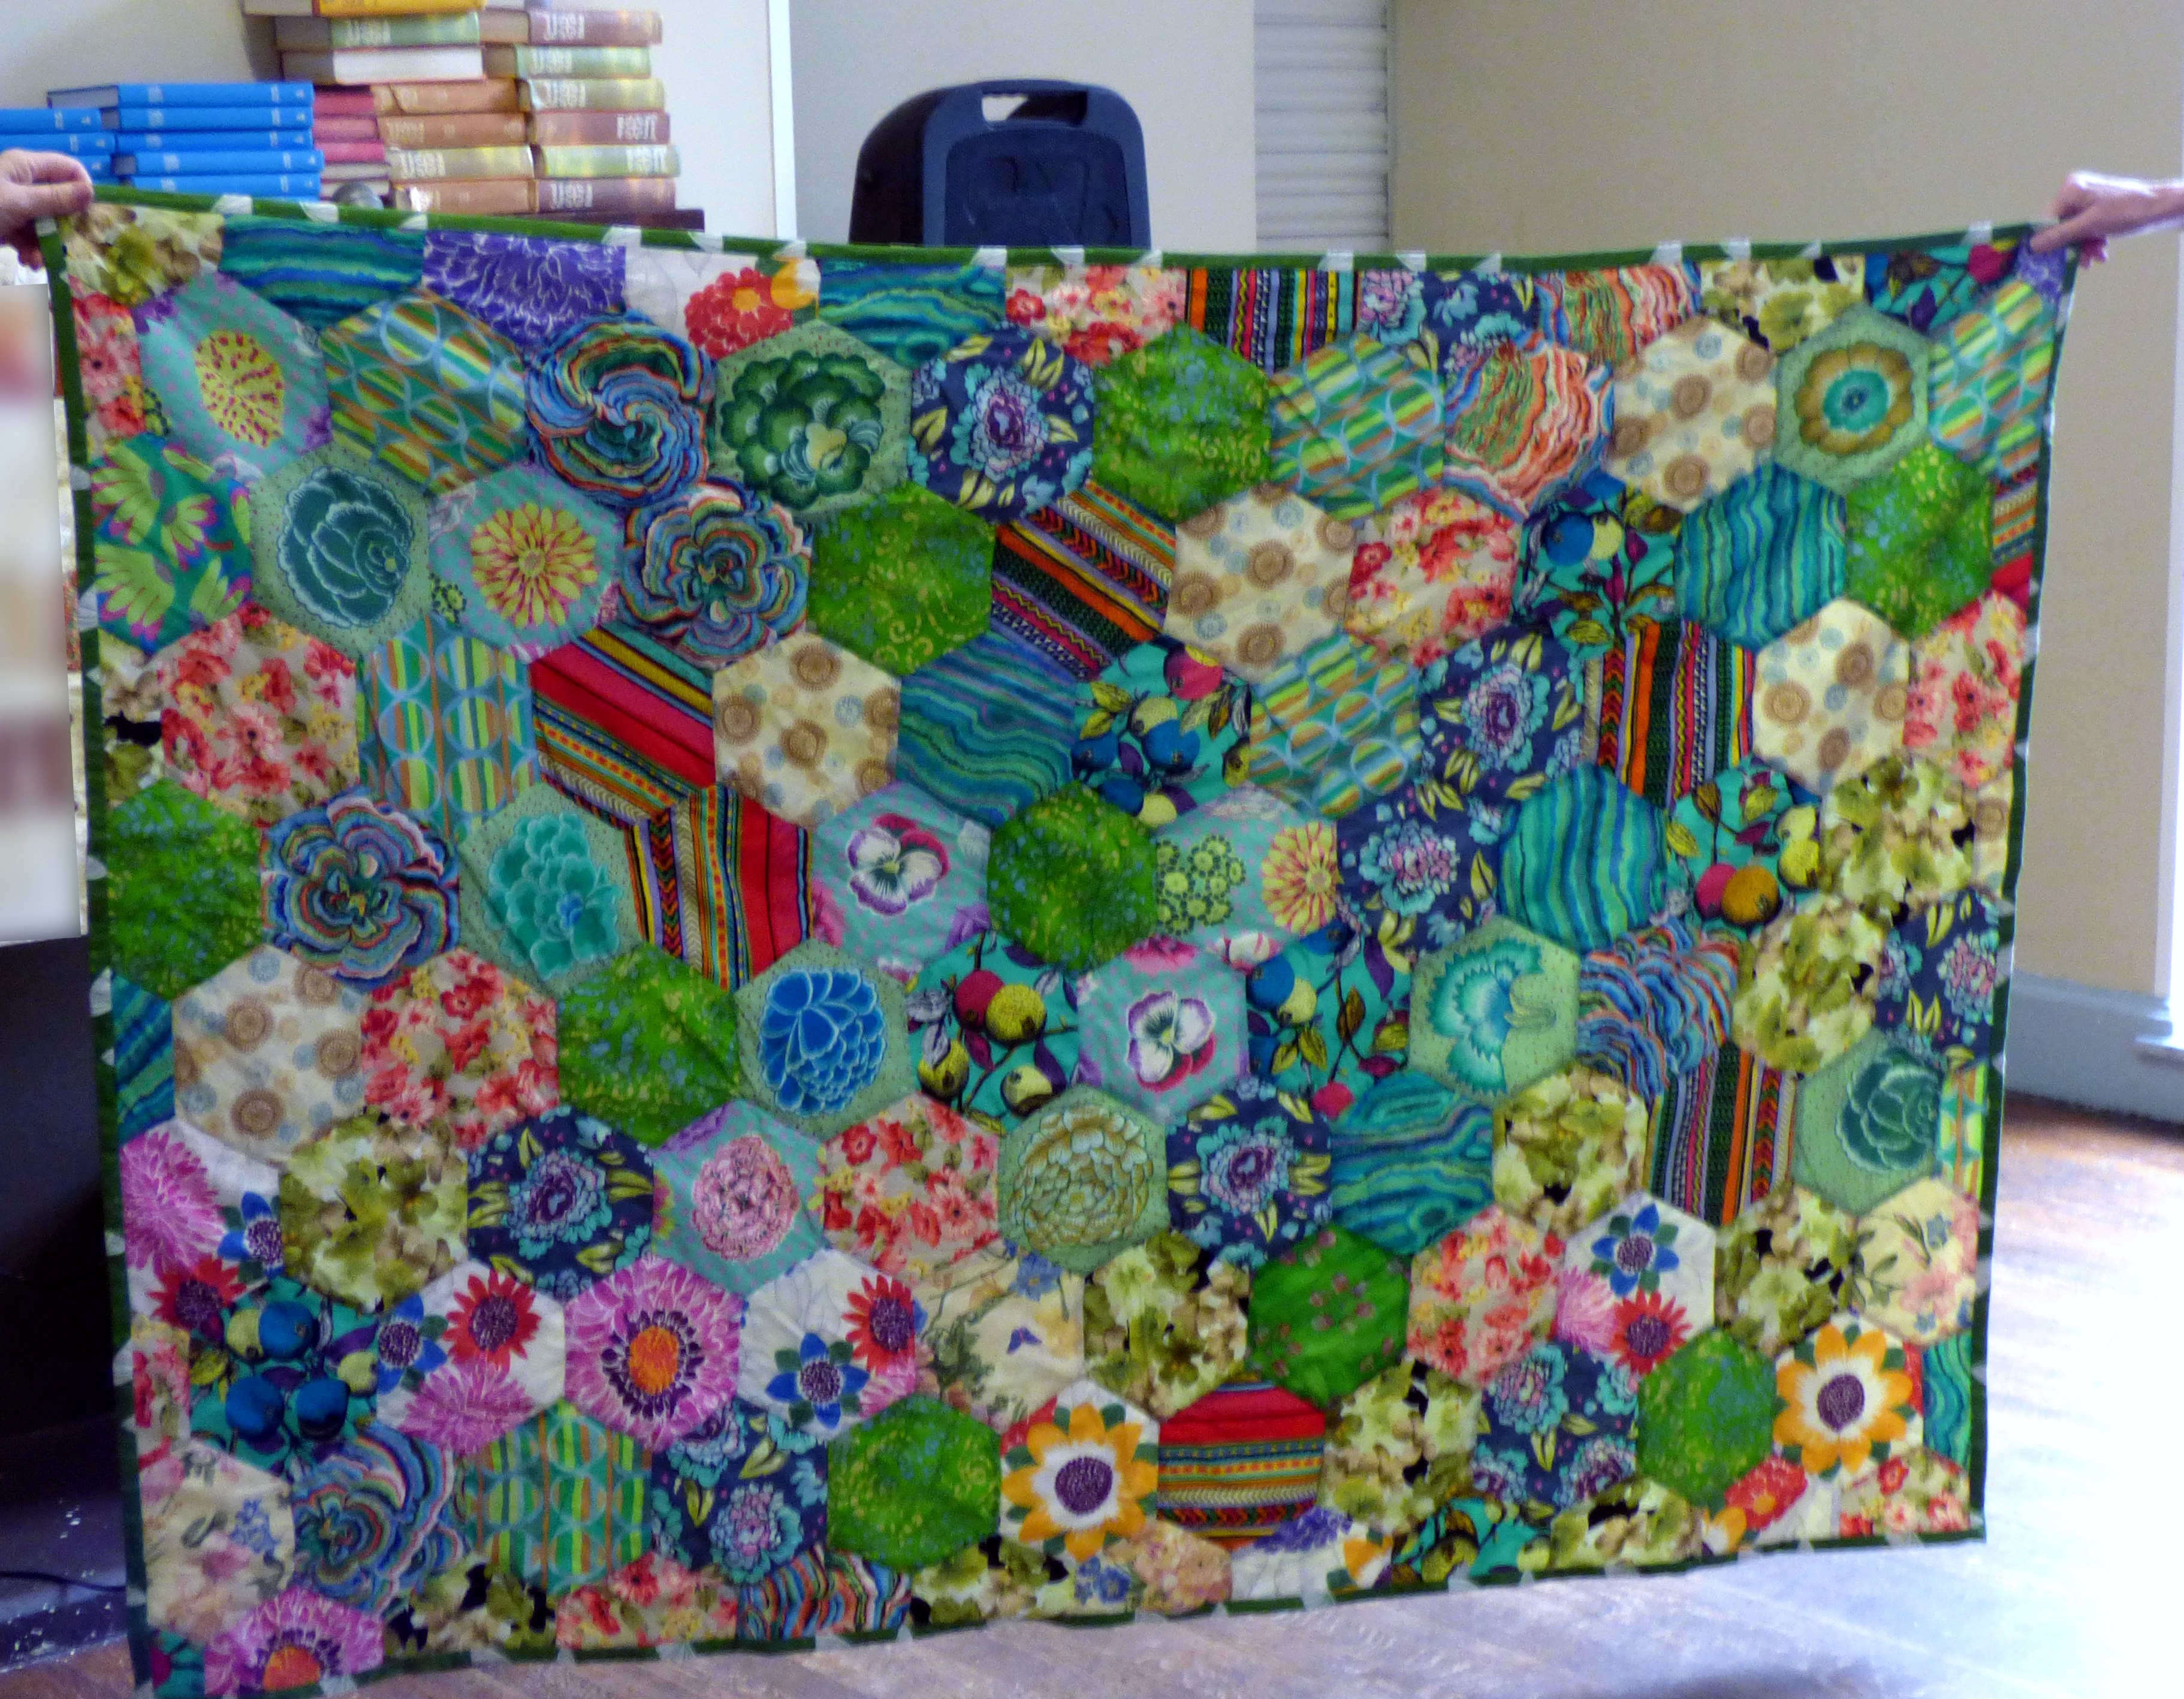 Quilt, inspired by Kaffe Fassett and made by Vicky Williams with help from Hilary McCormack & David Peglar, 2018